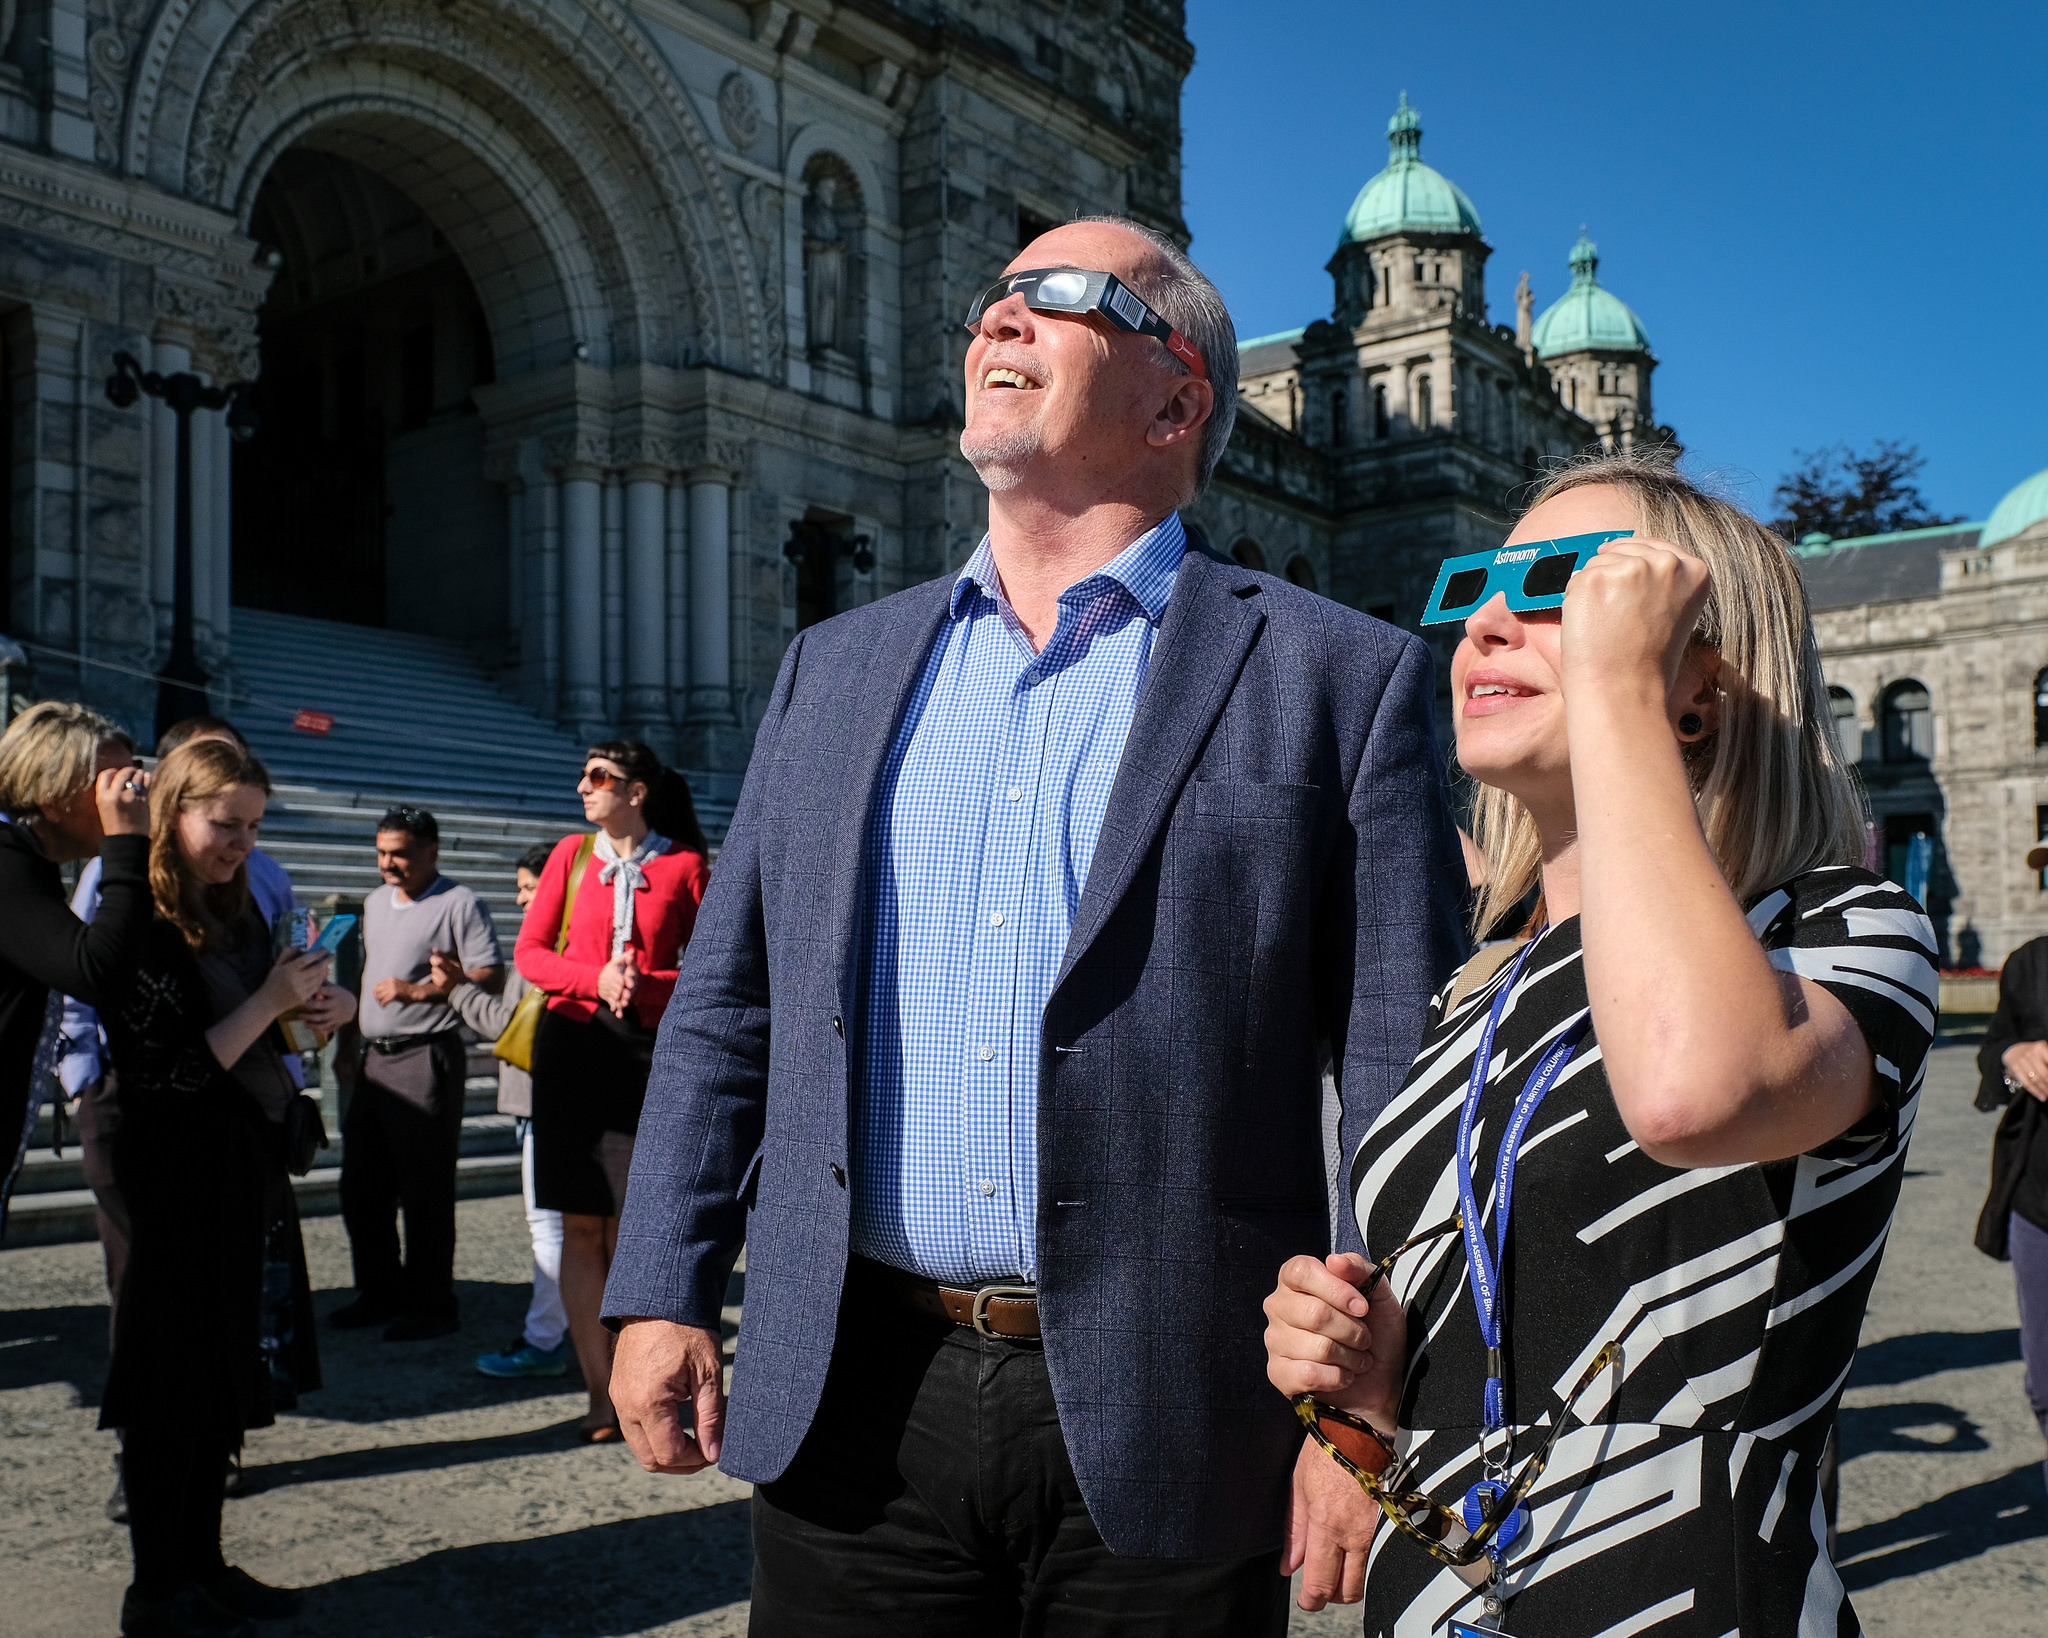 John Horgan viewing the eclipse